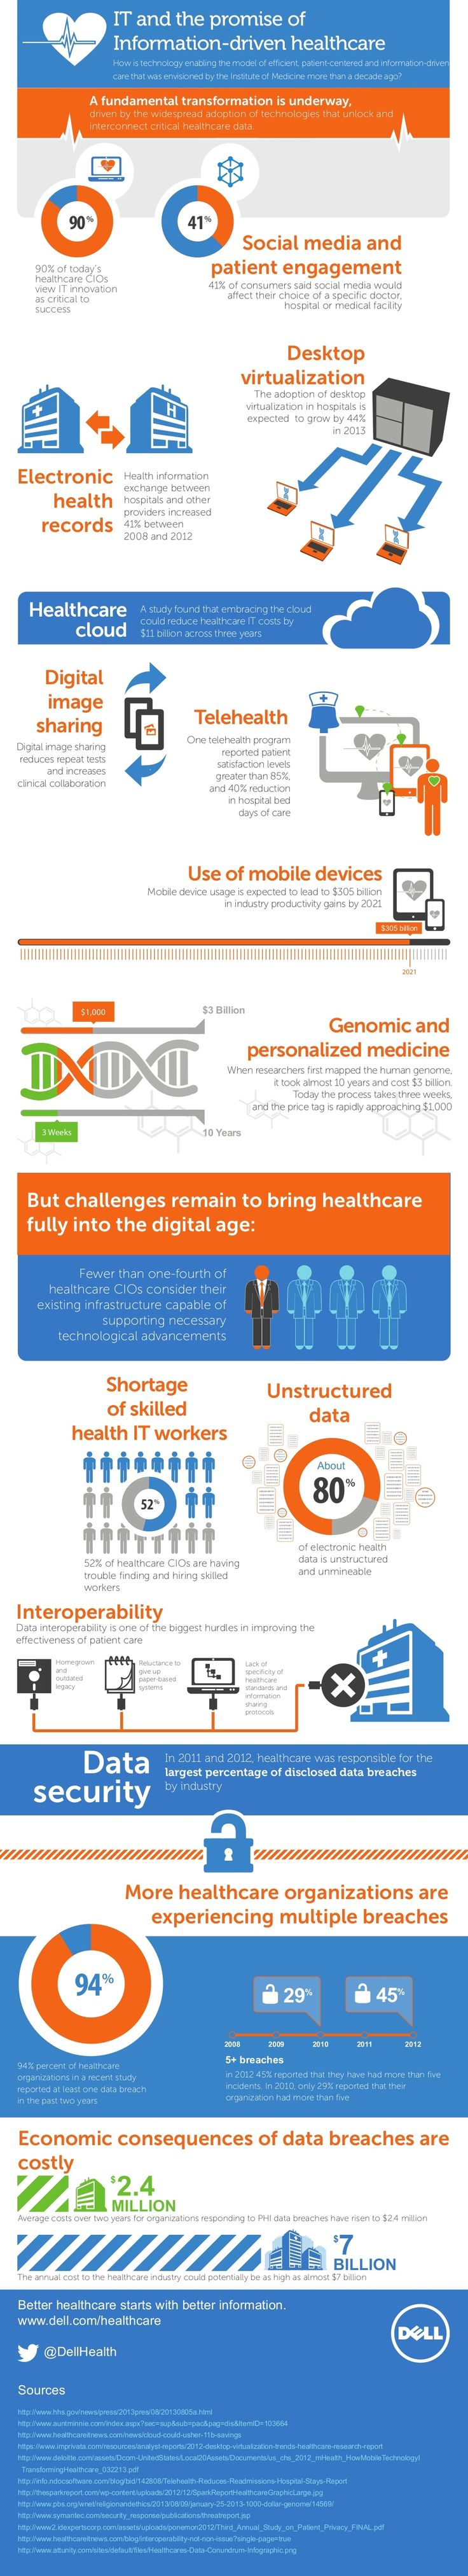 Health IT And The Promise of Patient Centered Healthcare